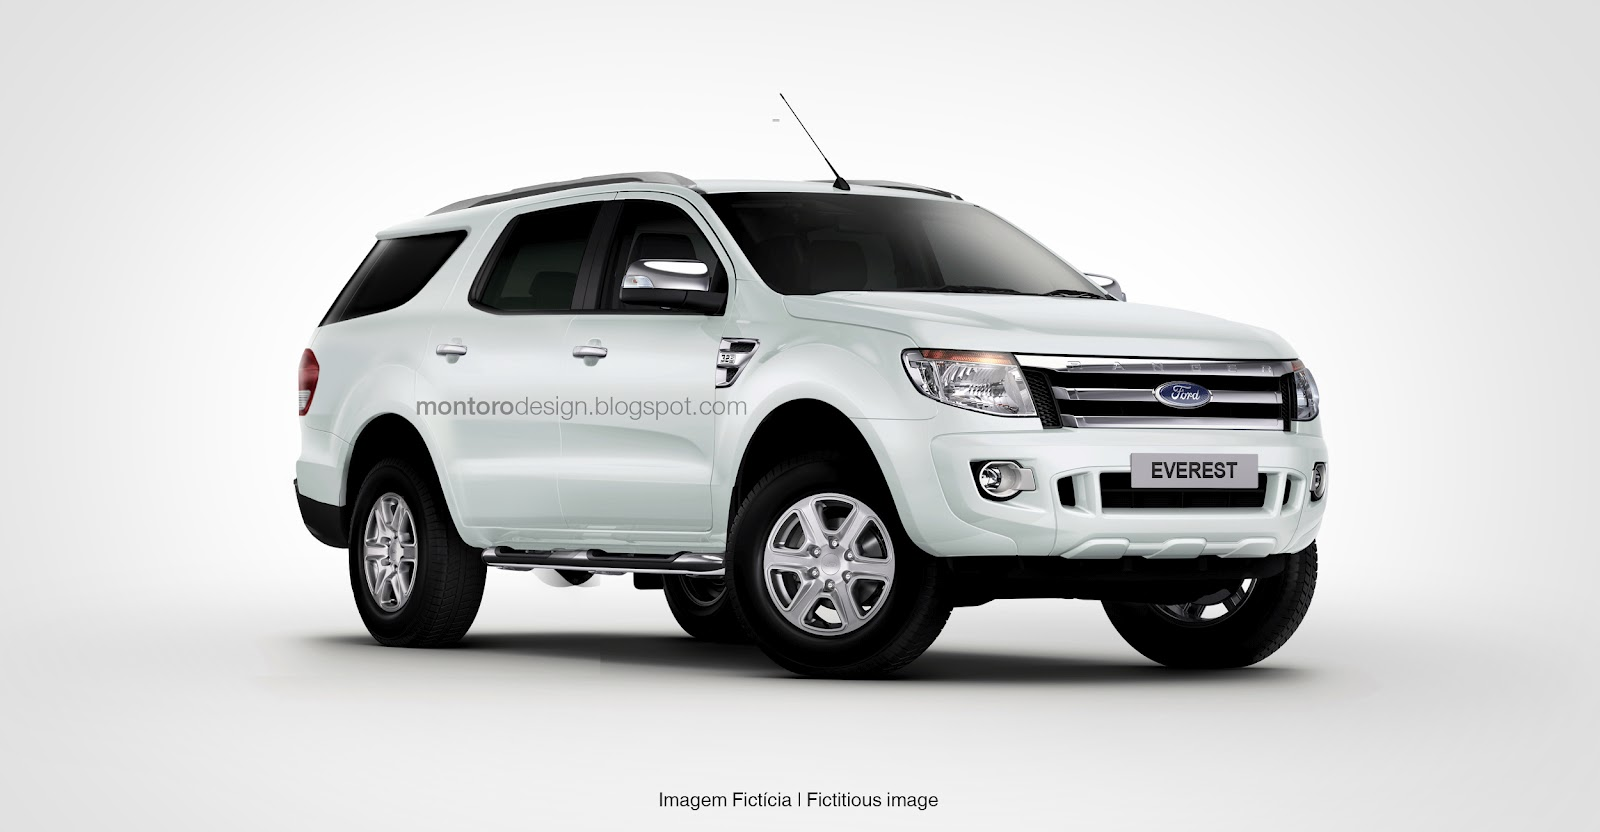 Ford Everest looks like, well, it's 100000x better than the current